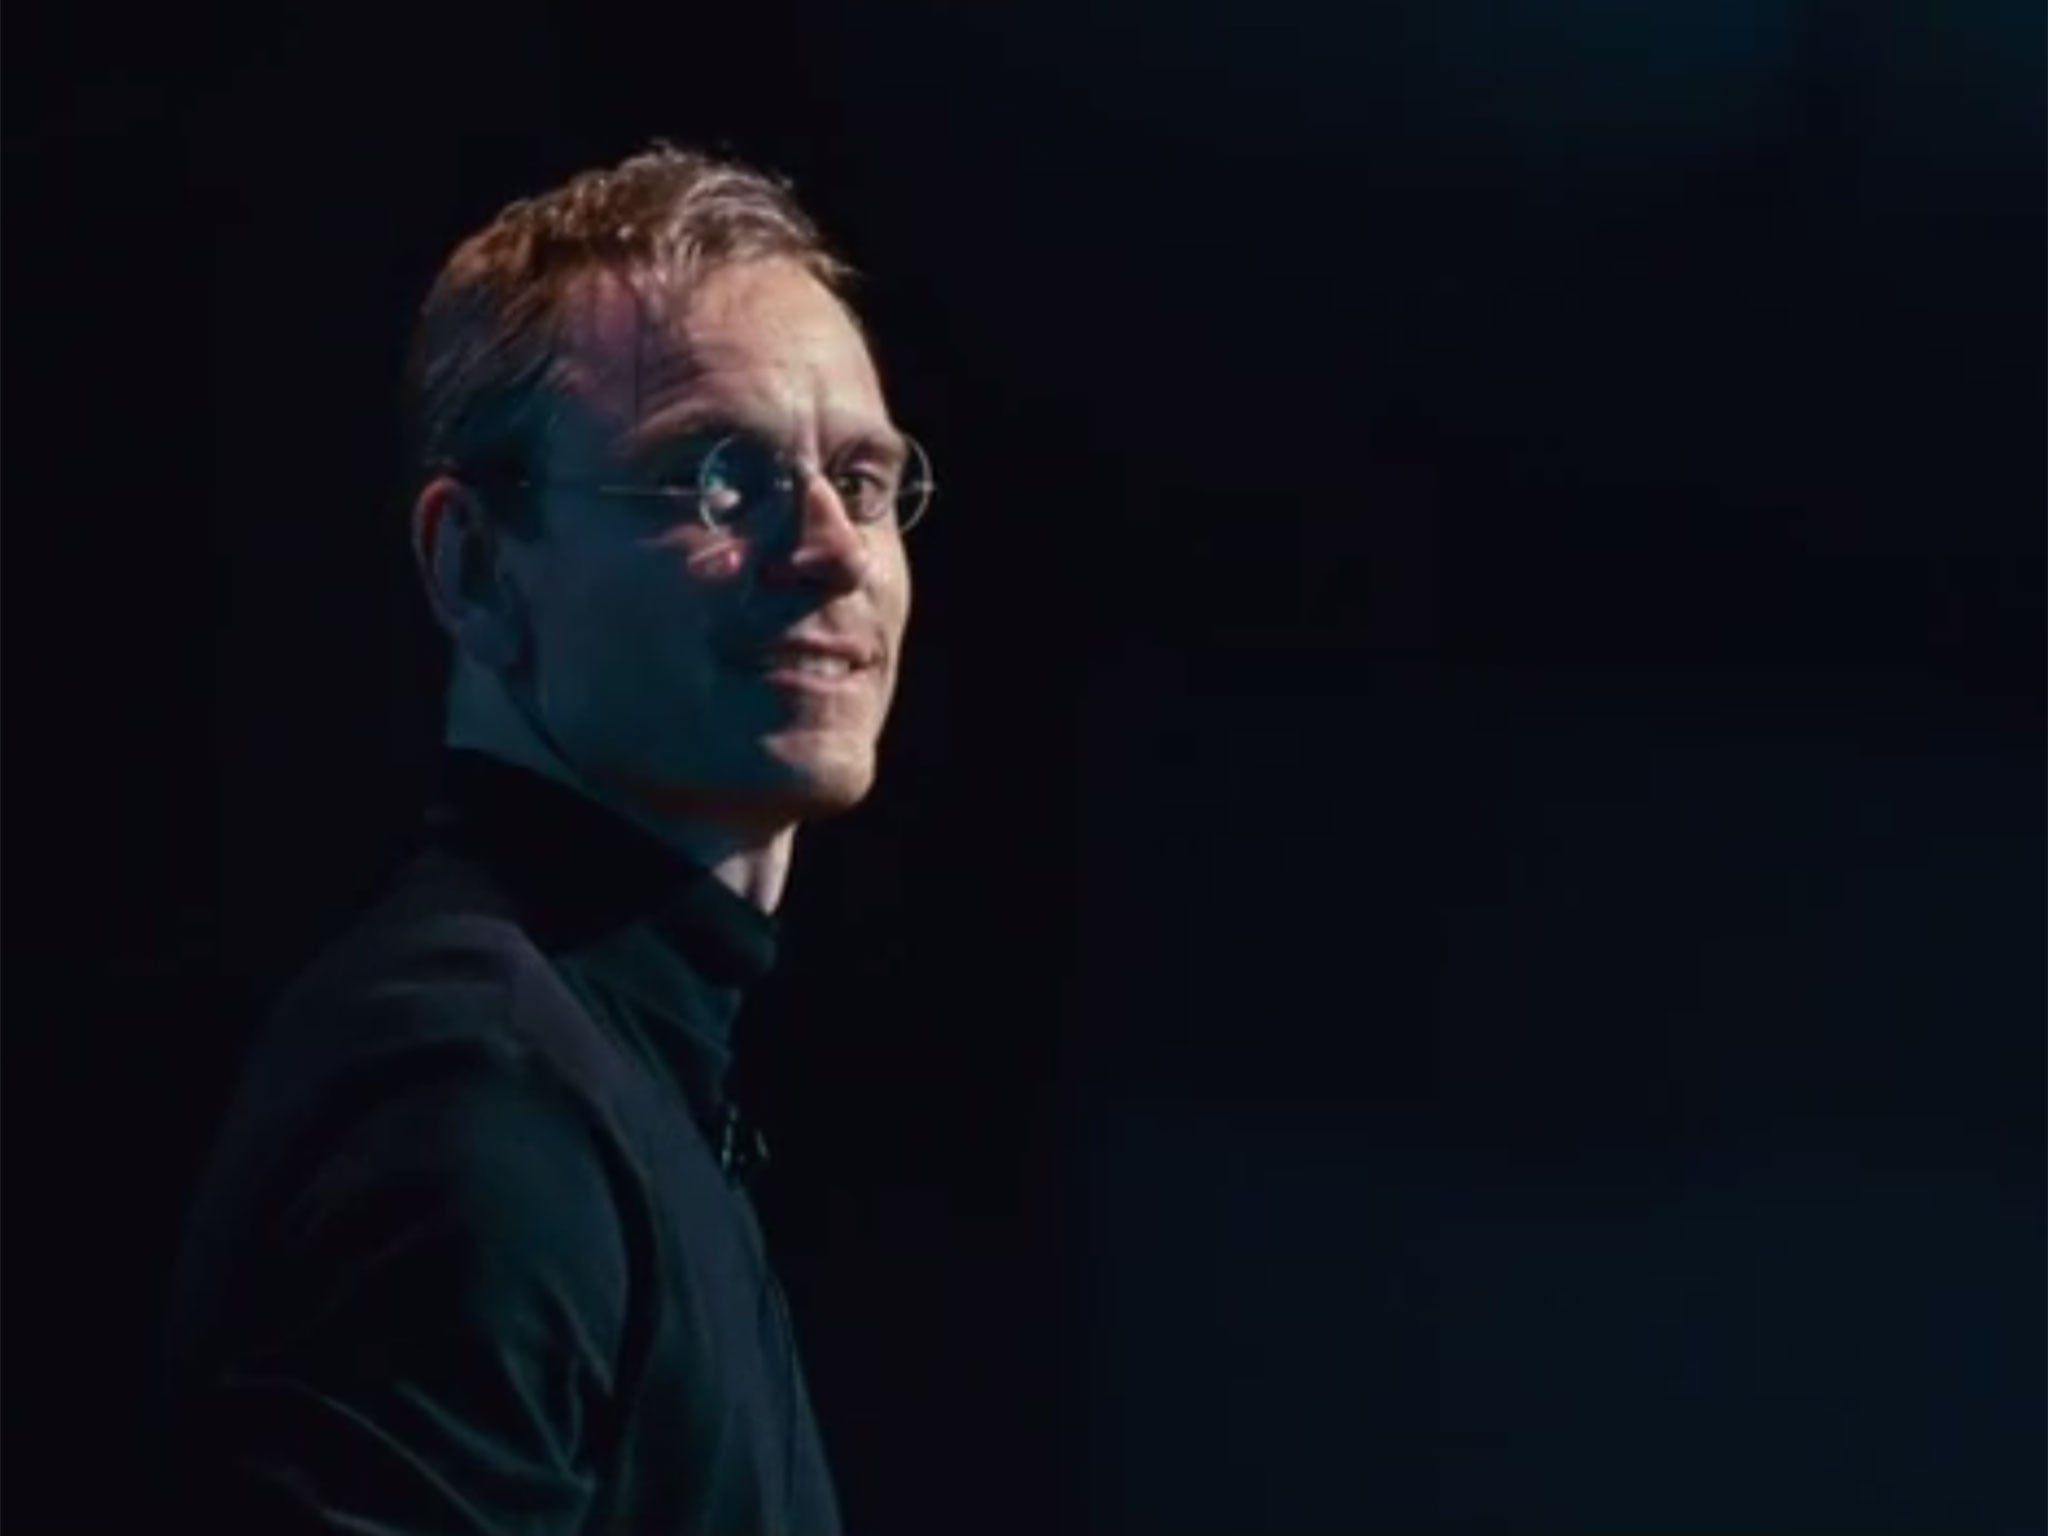 Steve Jobs trailer: Michael Fassbender plays deranged